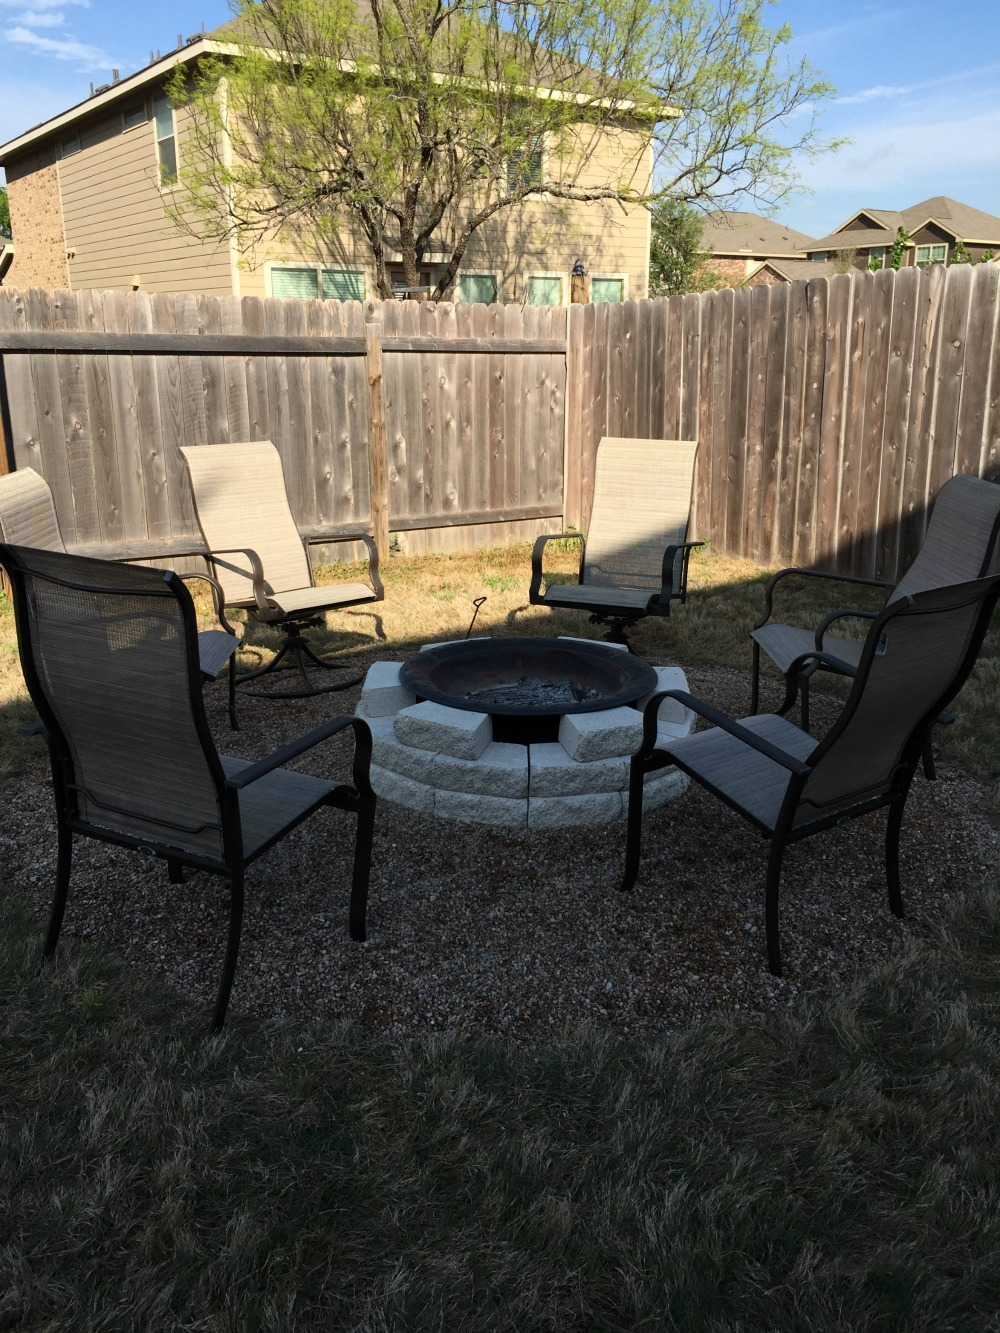 We Decided Not To Put Any Sort Of Border Around The Outside For Now So  People Could Easily Move Their Chairs Back If They Need Too. I Think It  Blends Nicely ...